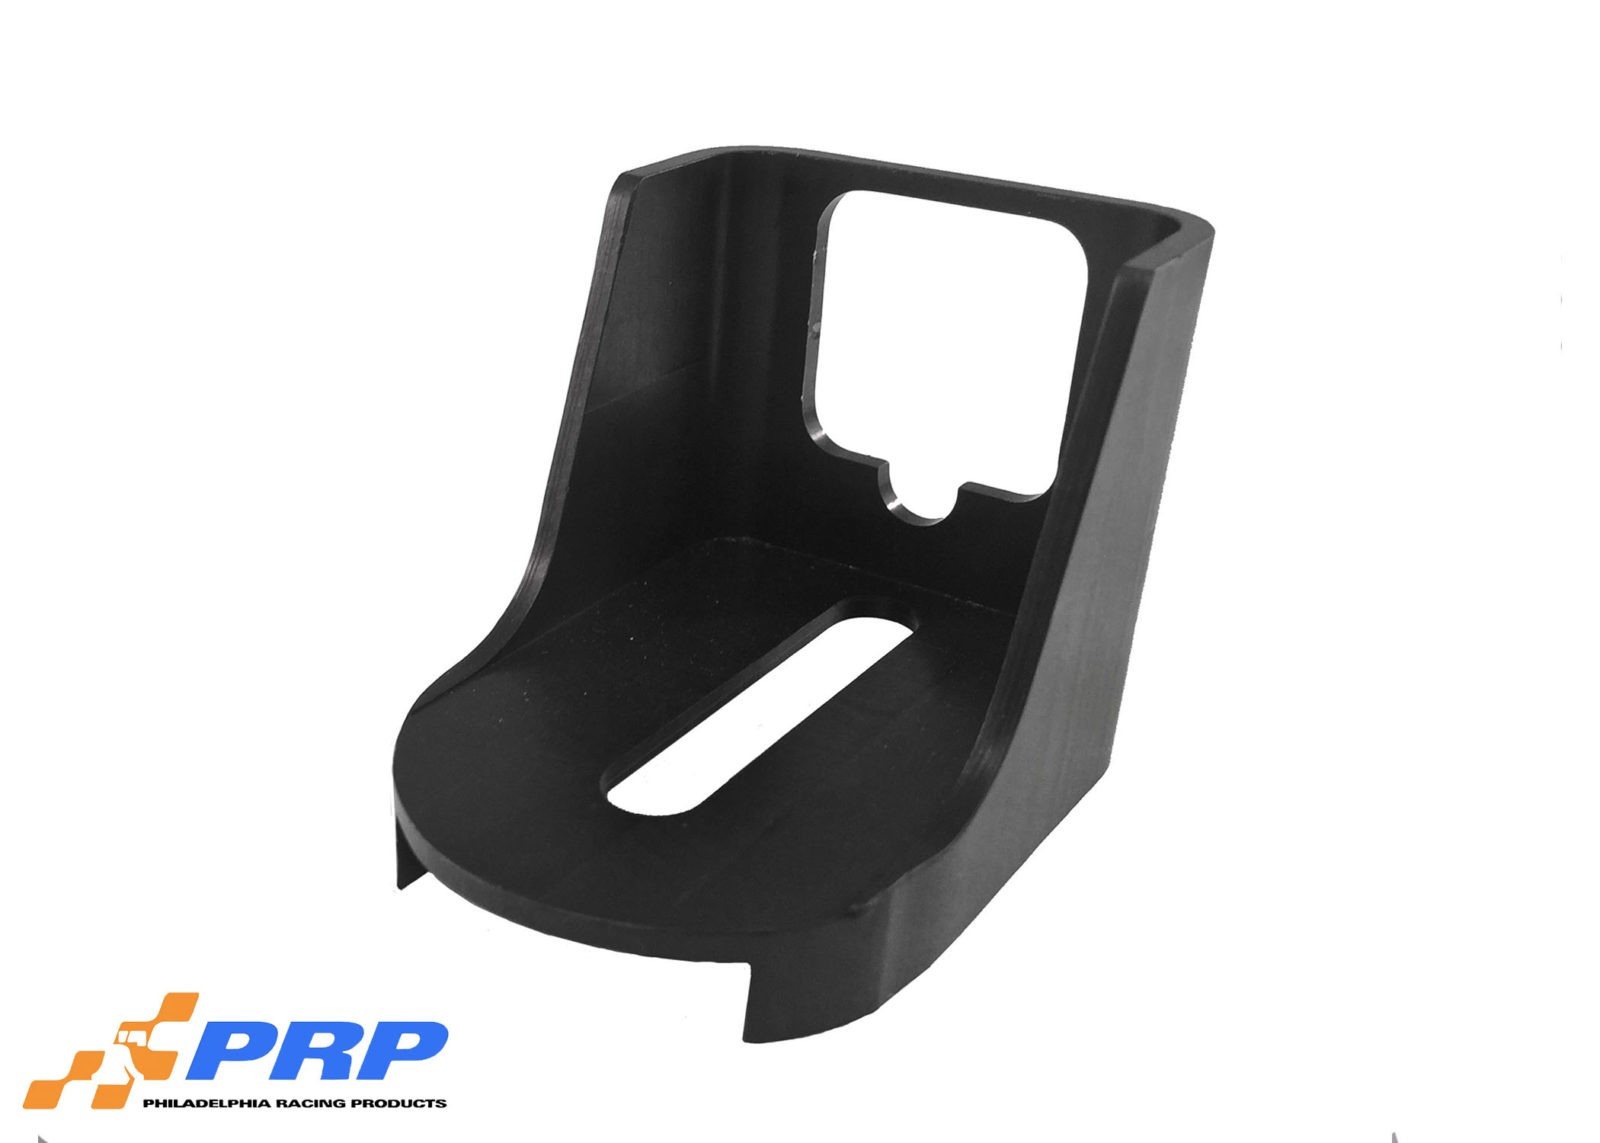 Black GM Kickdown Detent Cable Brackets made by PRP Racing Products